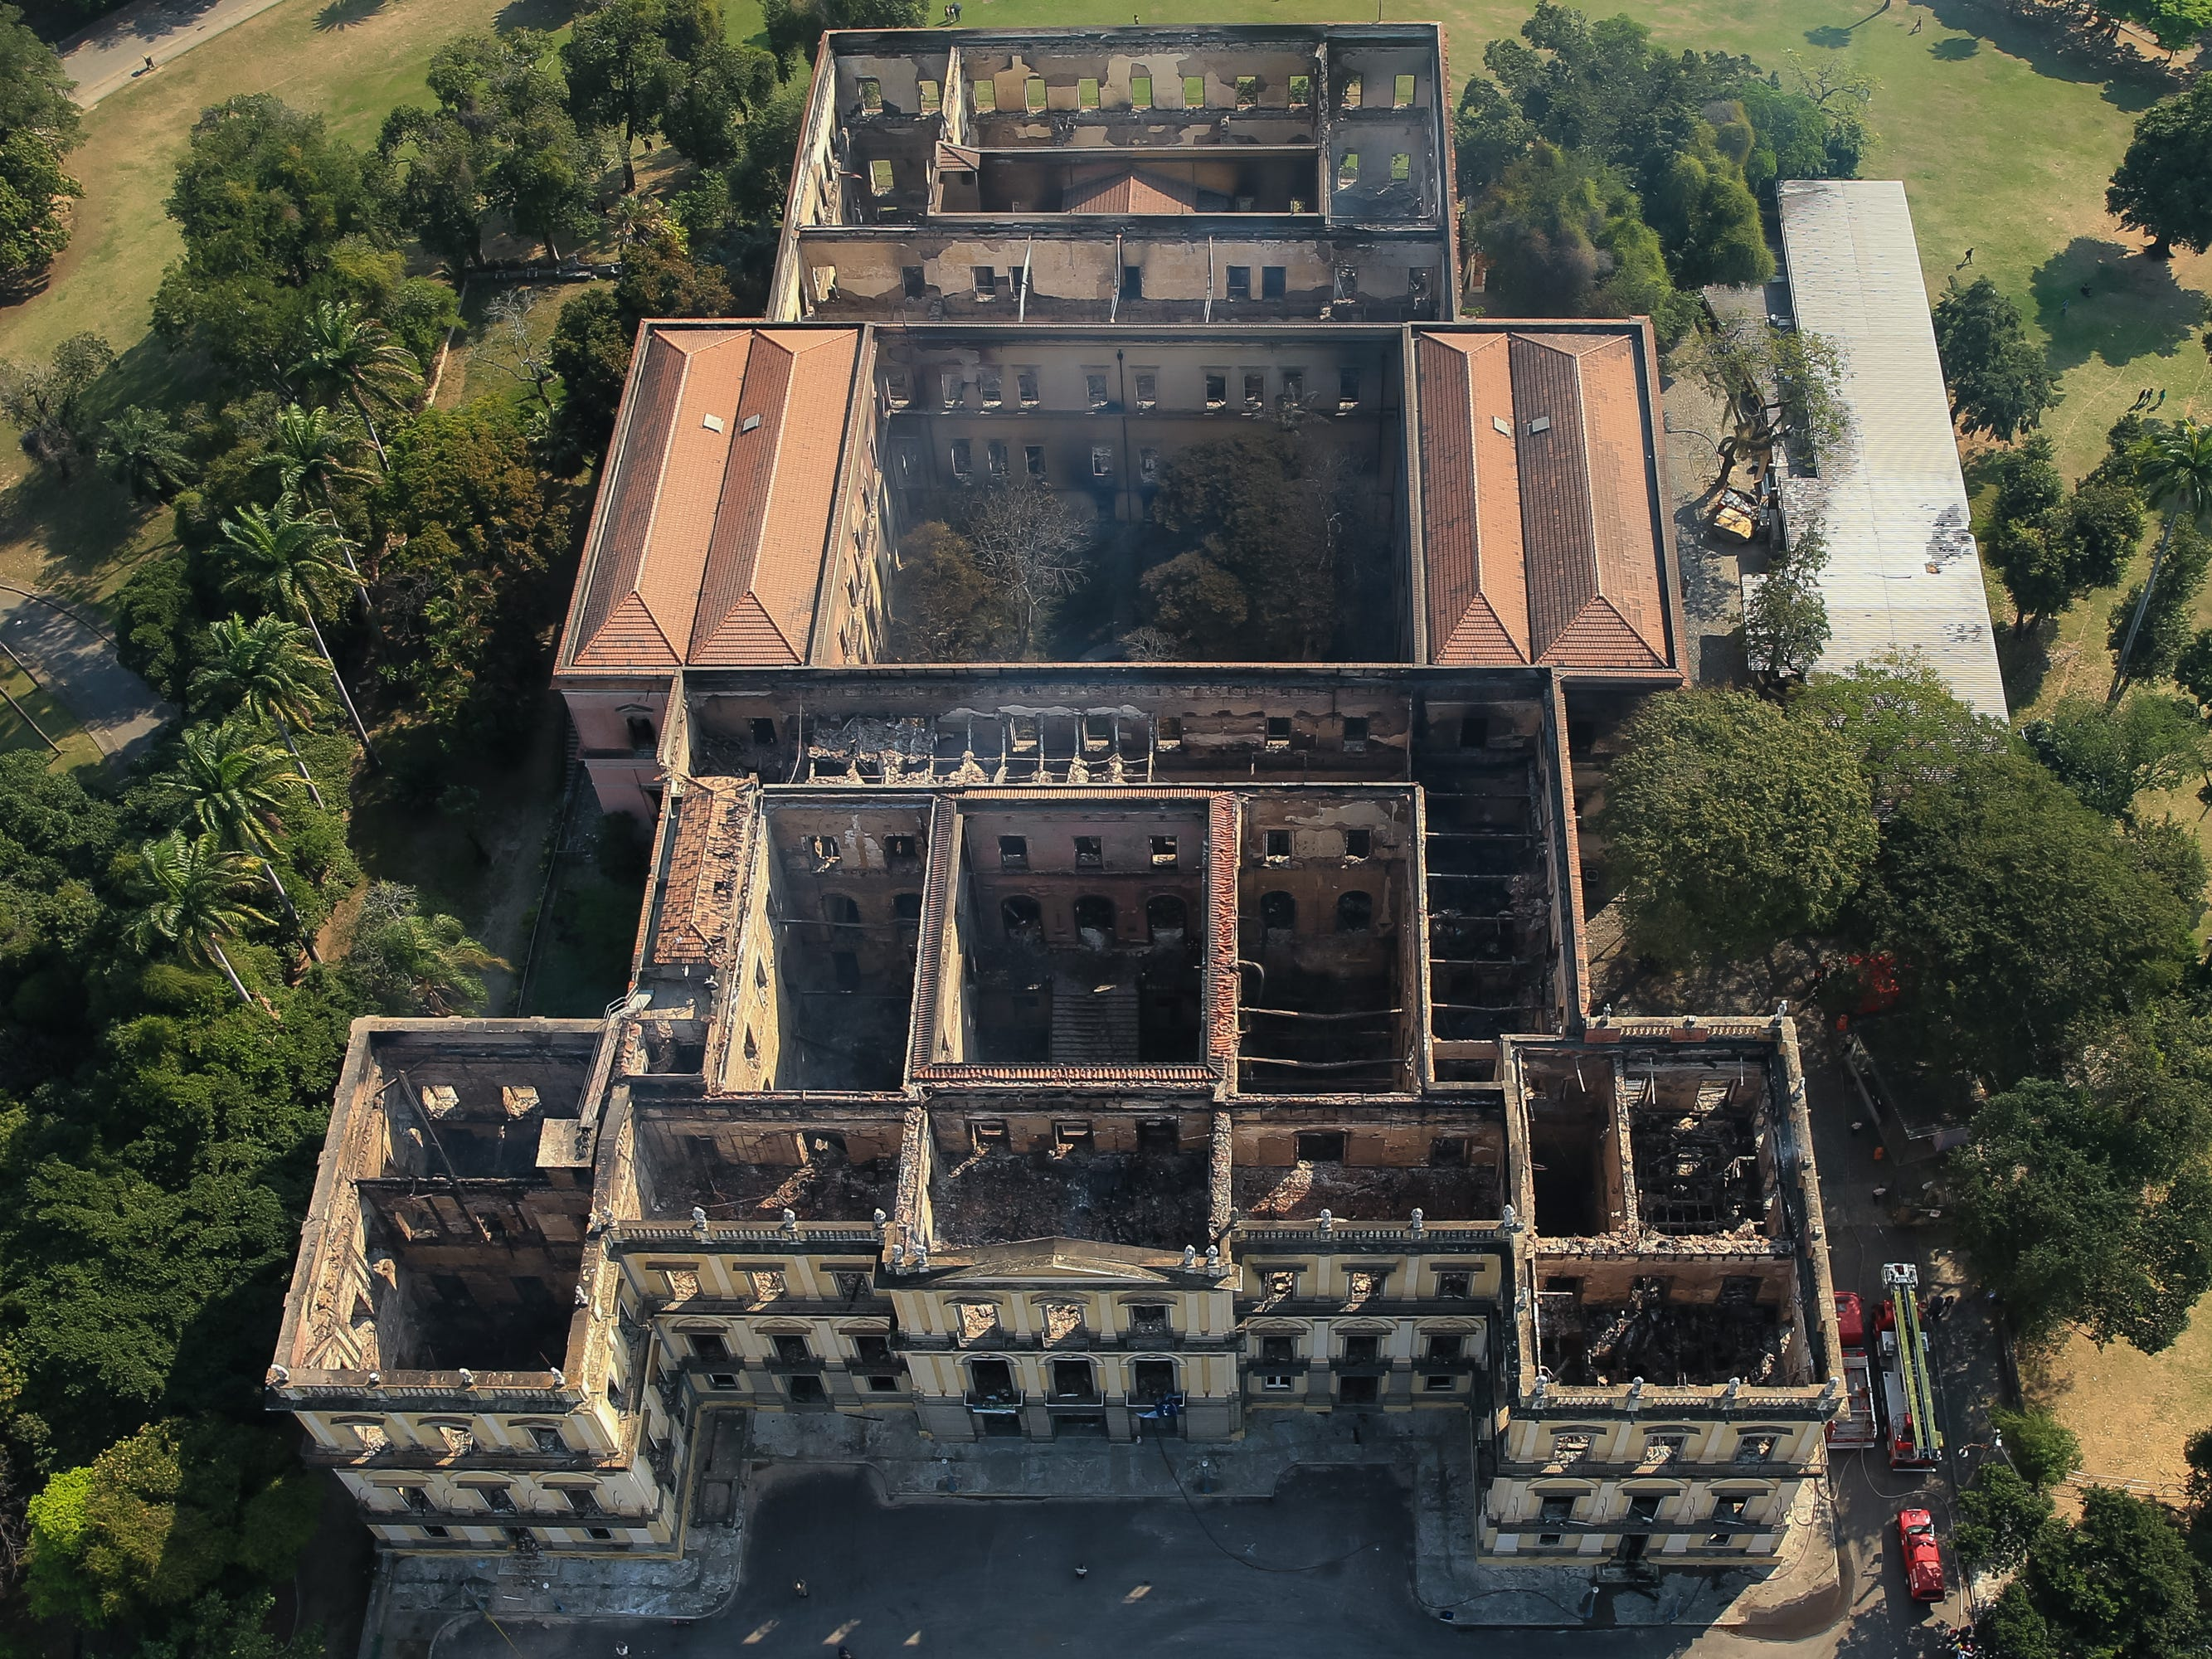 The National Museum of Brazil is seen after a devastating fire on September 3, 2018, in Rio de Janeiro, Brazil.